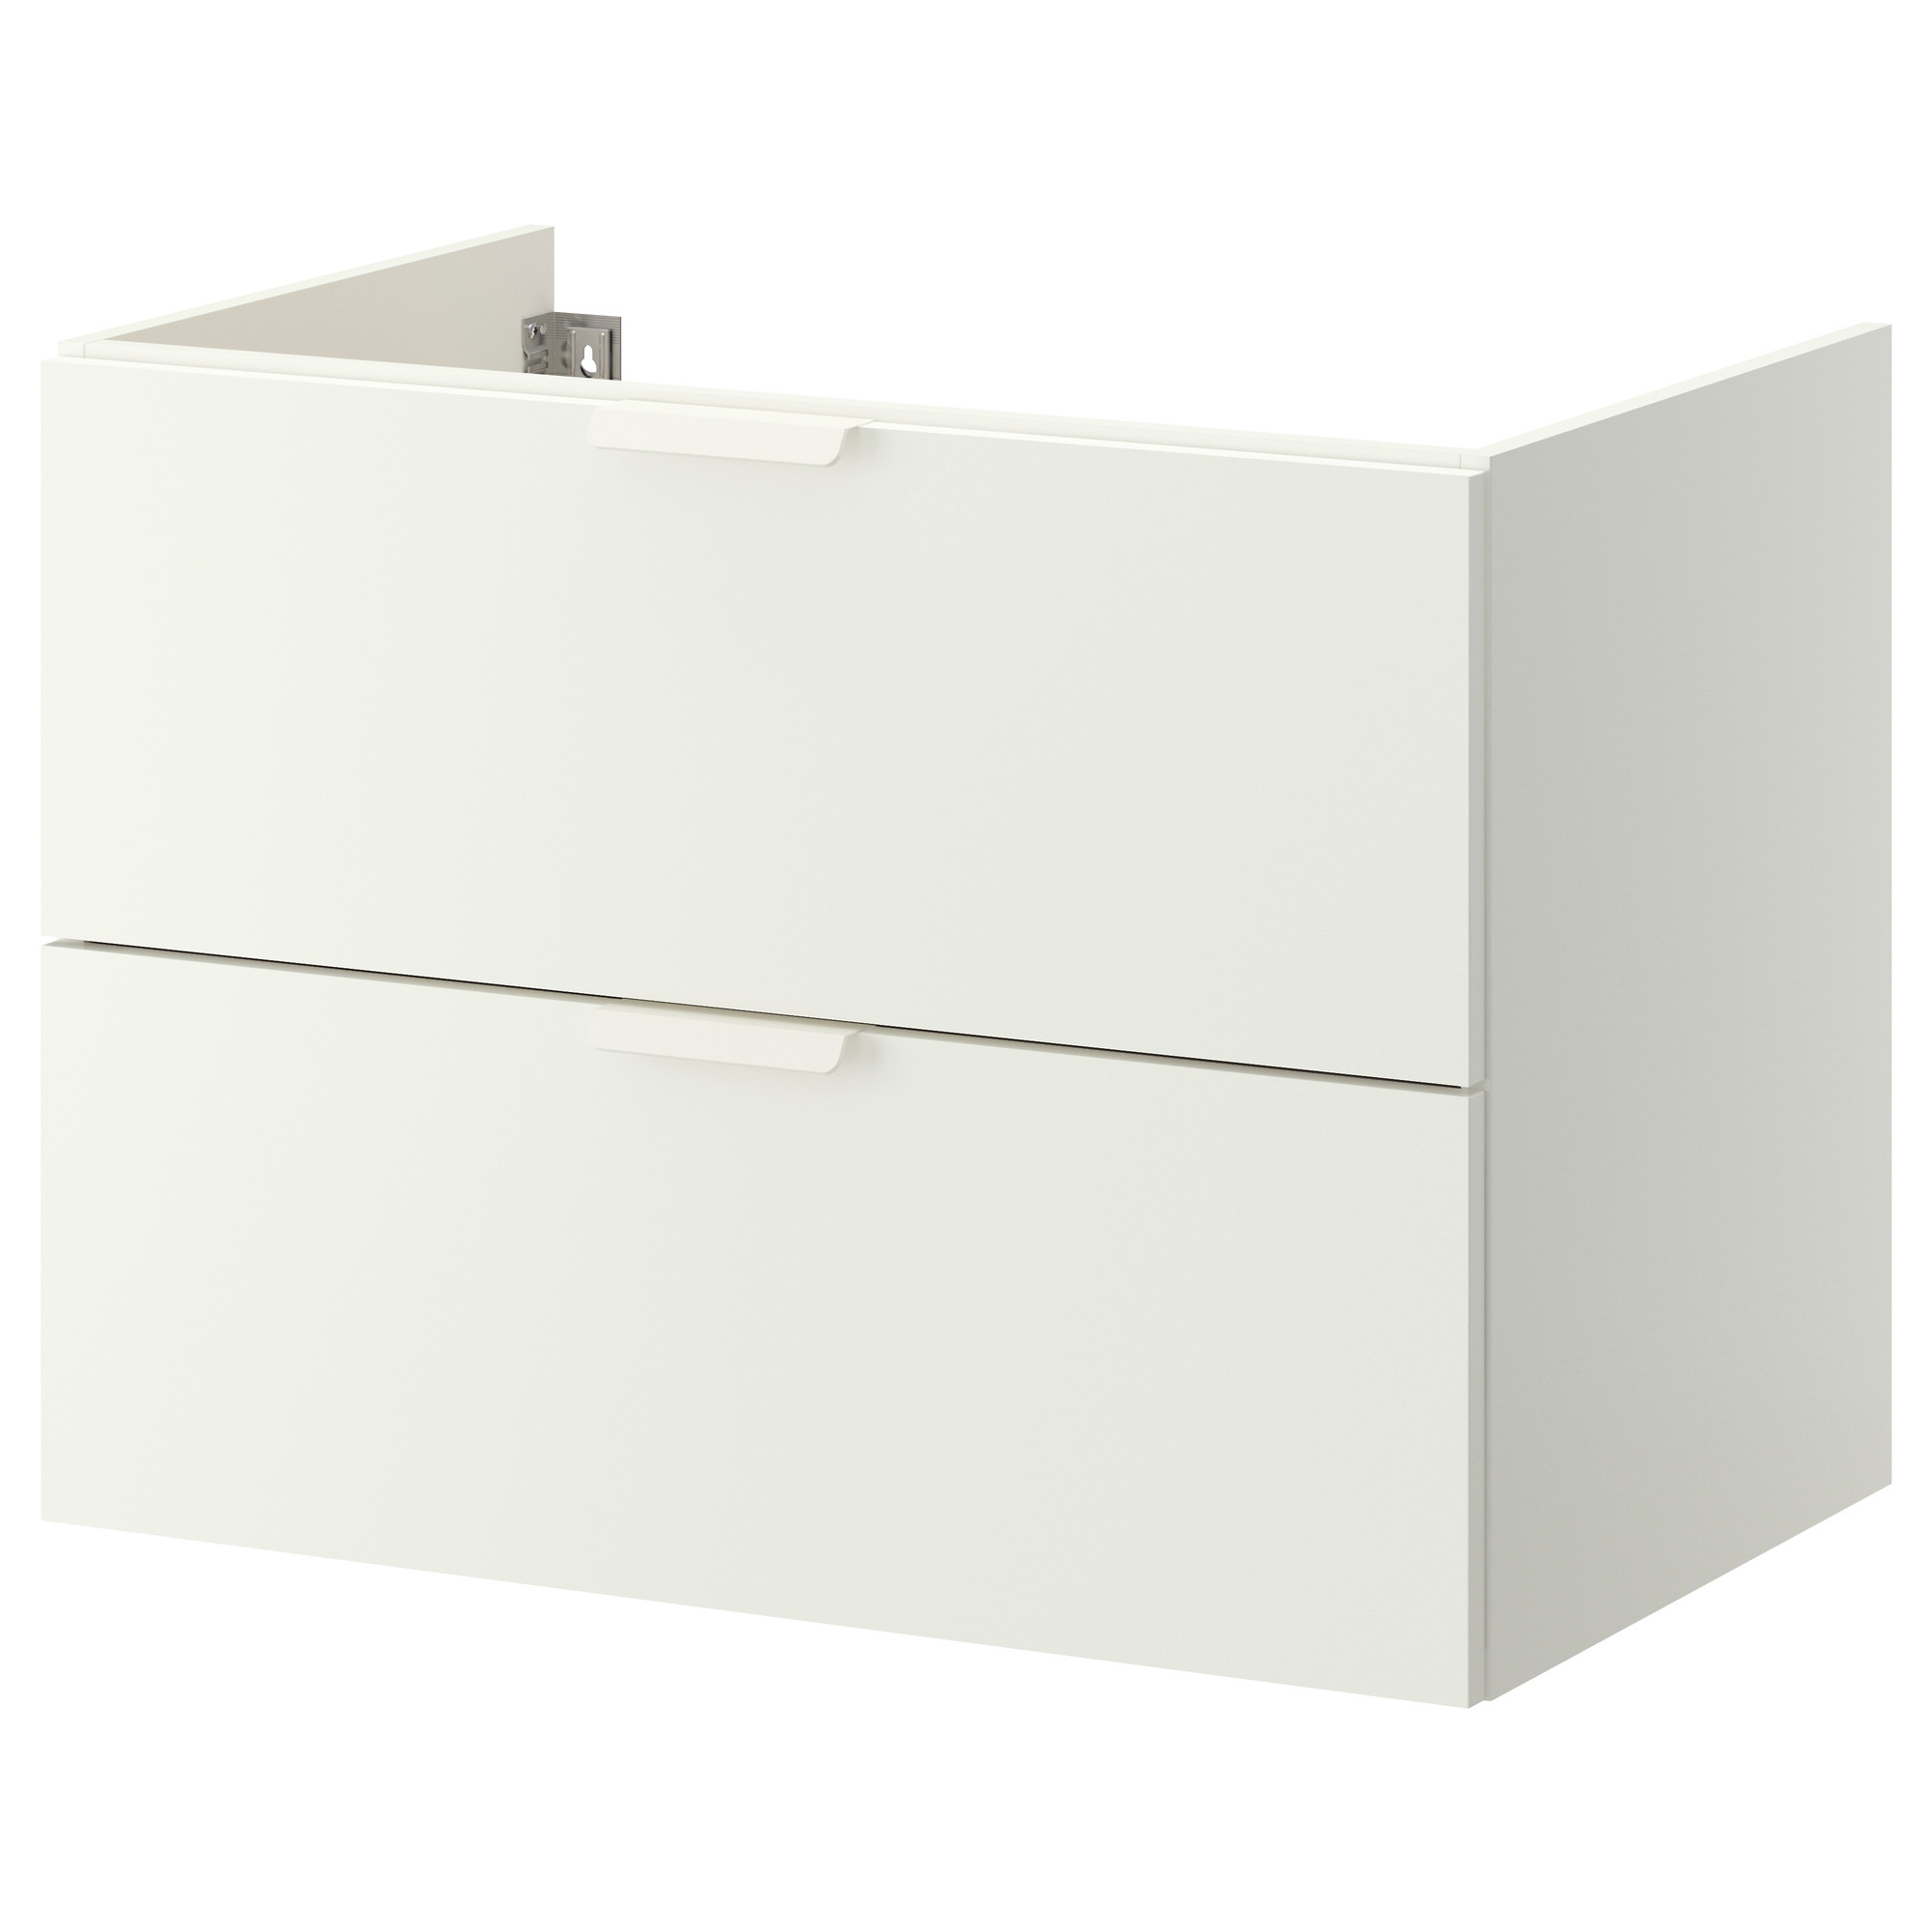 Ikea Godmorgon Drawer Depth ~ GODMORGON wash stand with 2 drawers